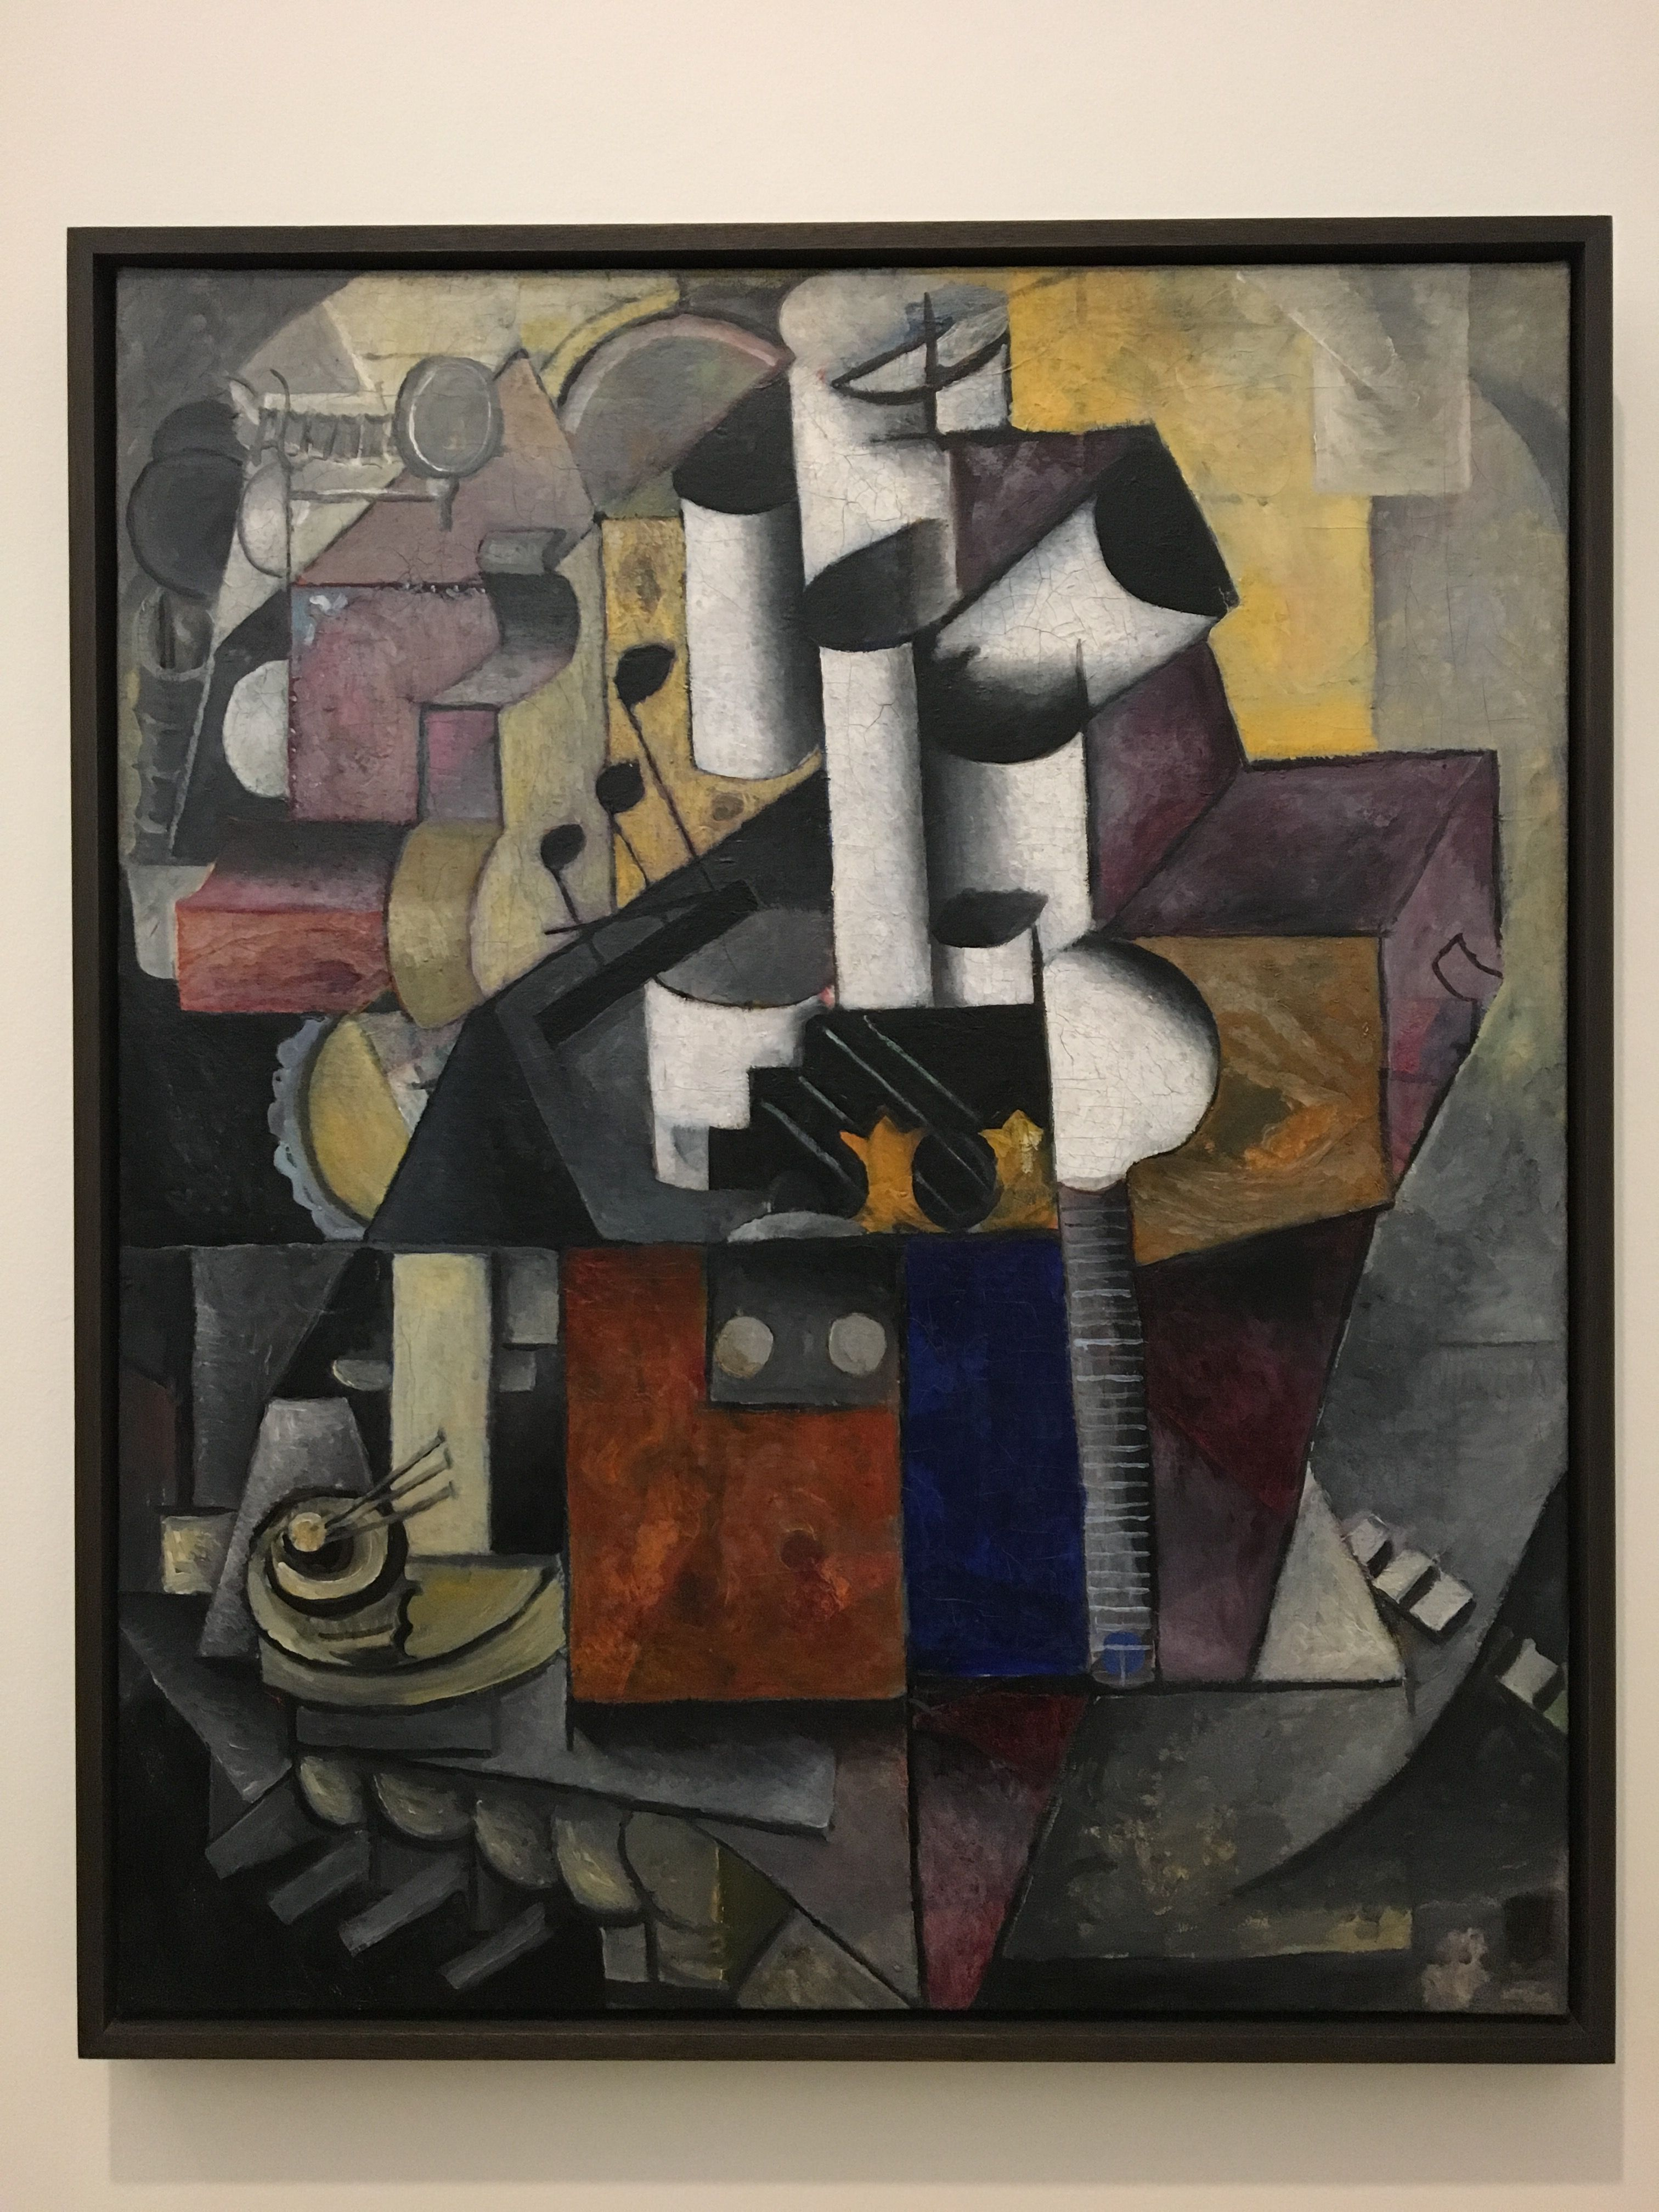 1916 Kazimir Malevich Suprematist Composition Abstract Art Poster Reprint New